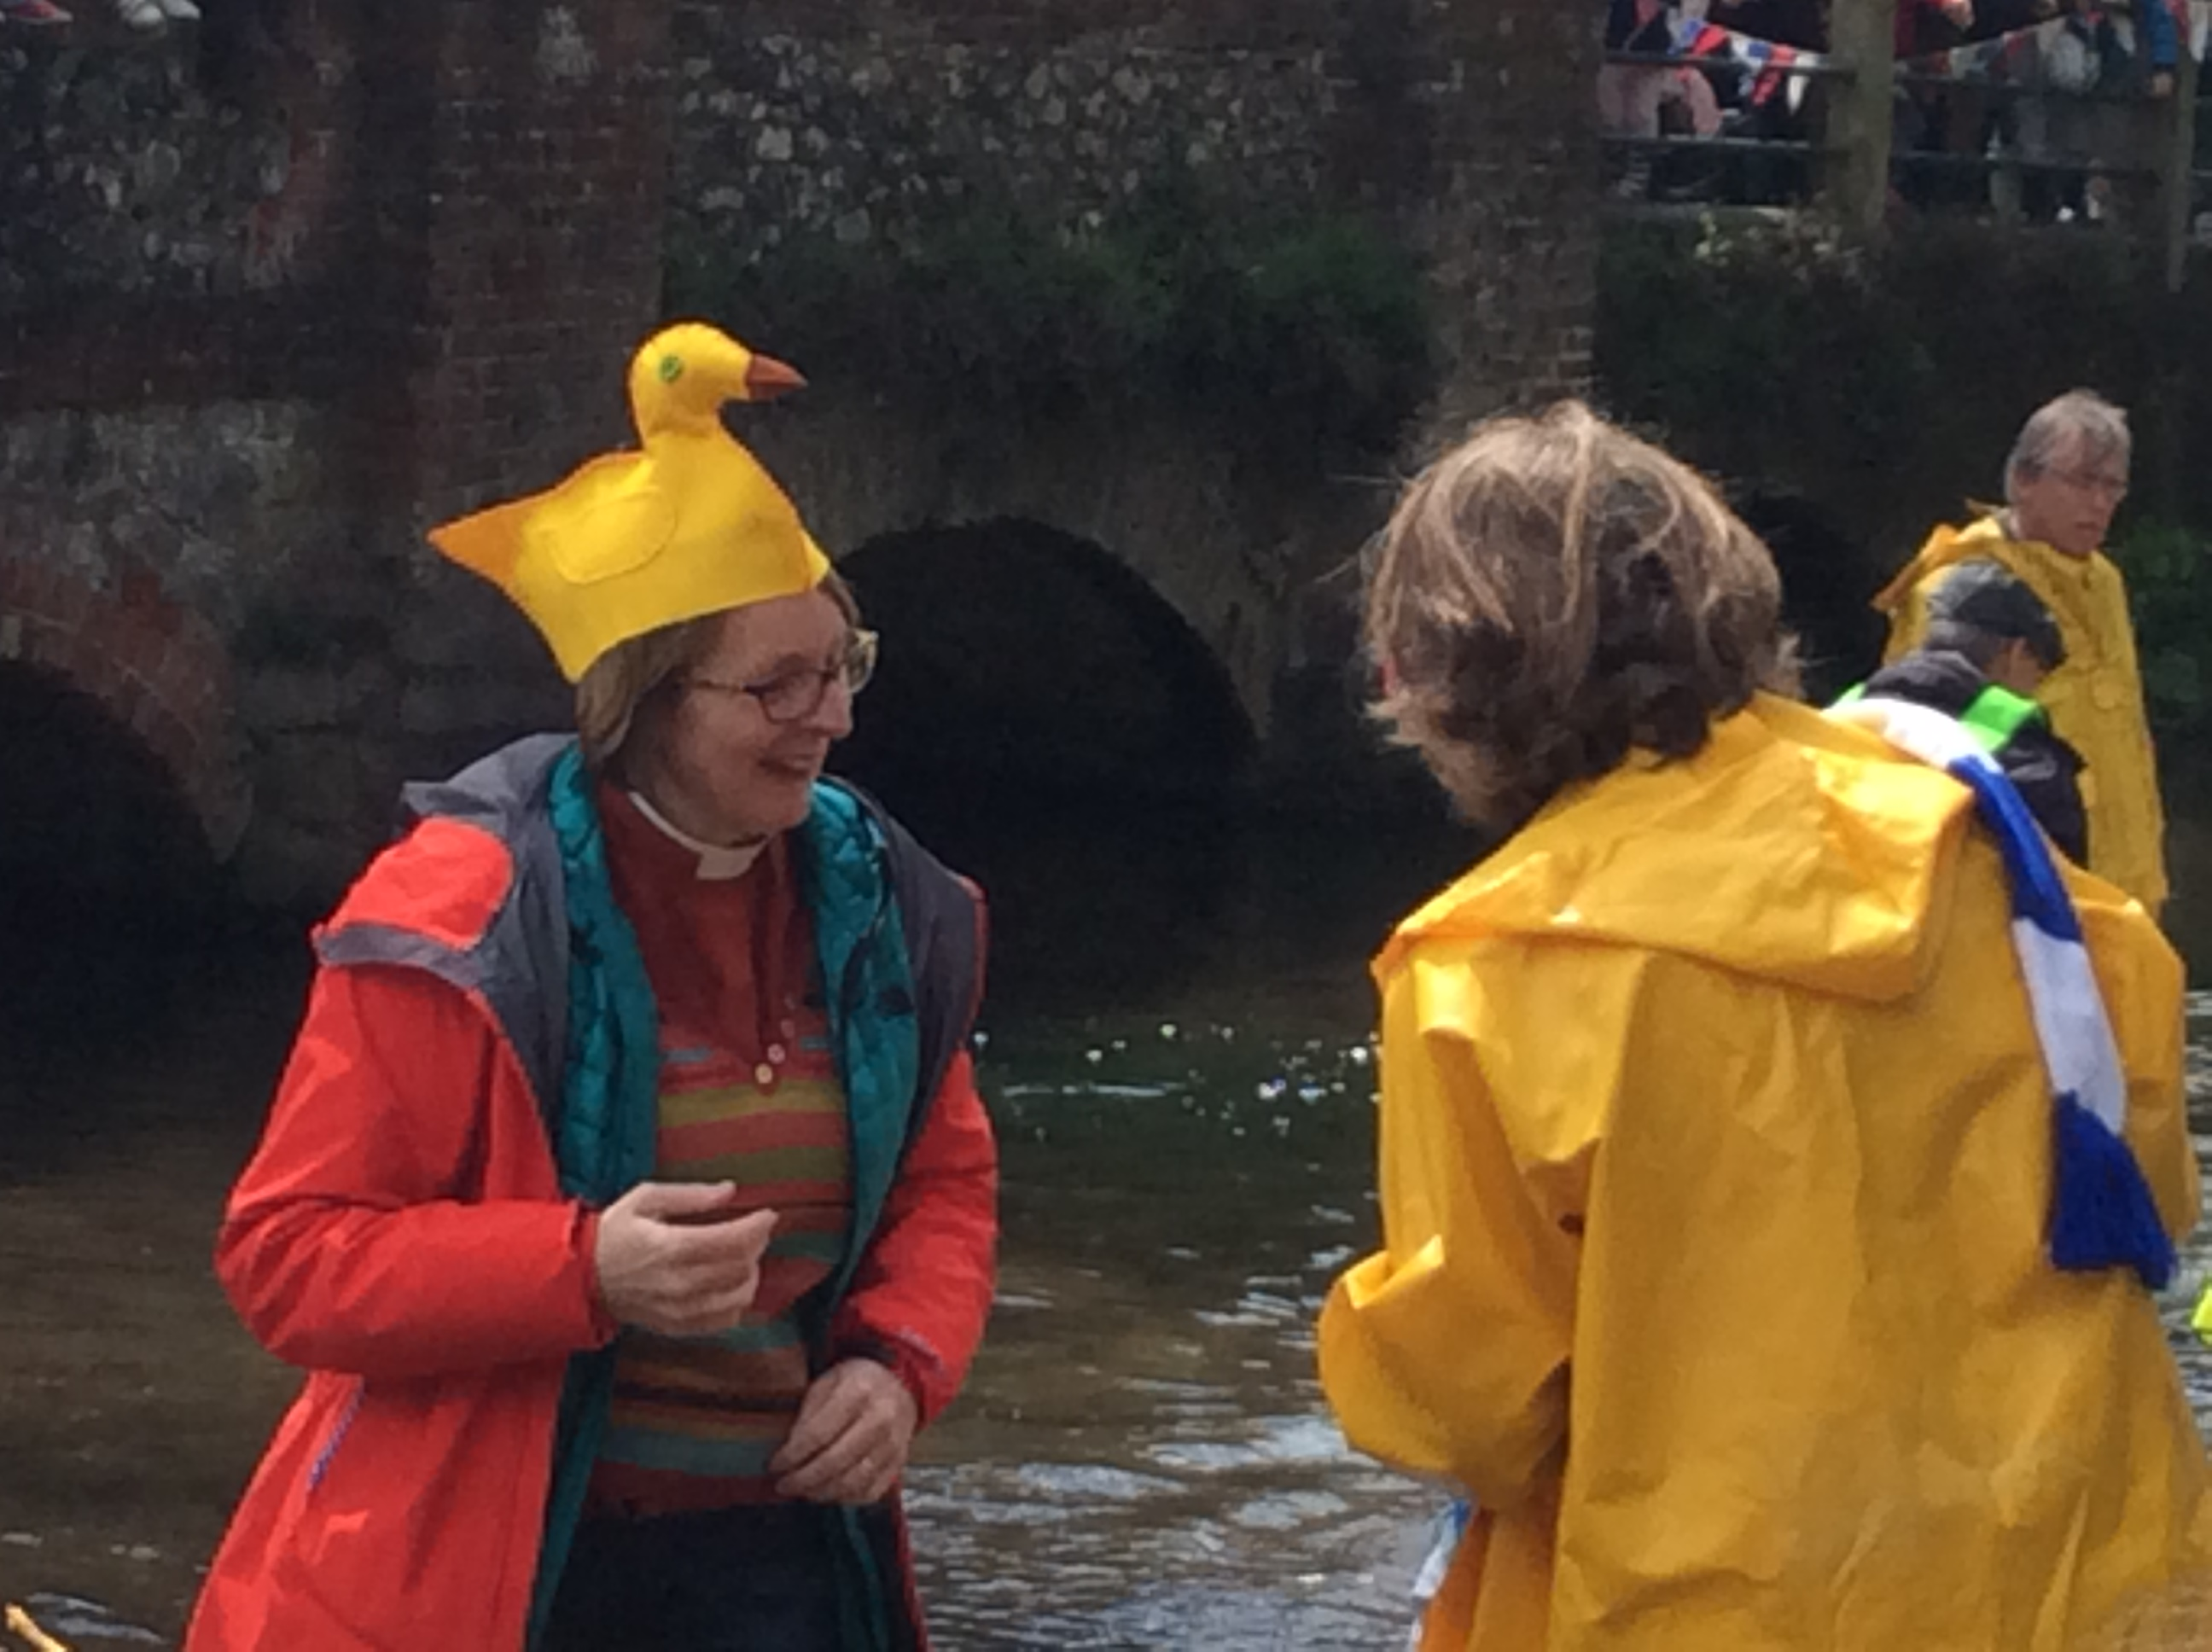 Judging the duck race